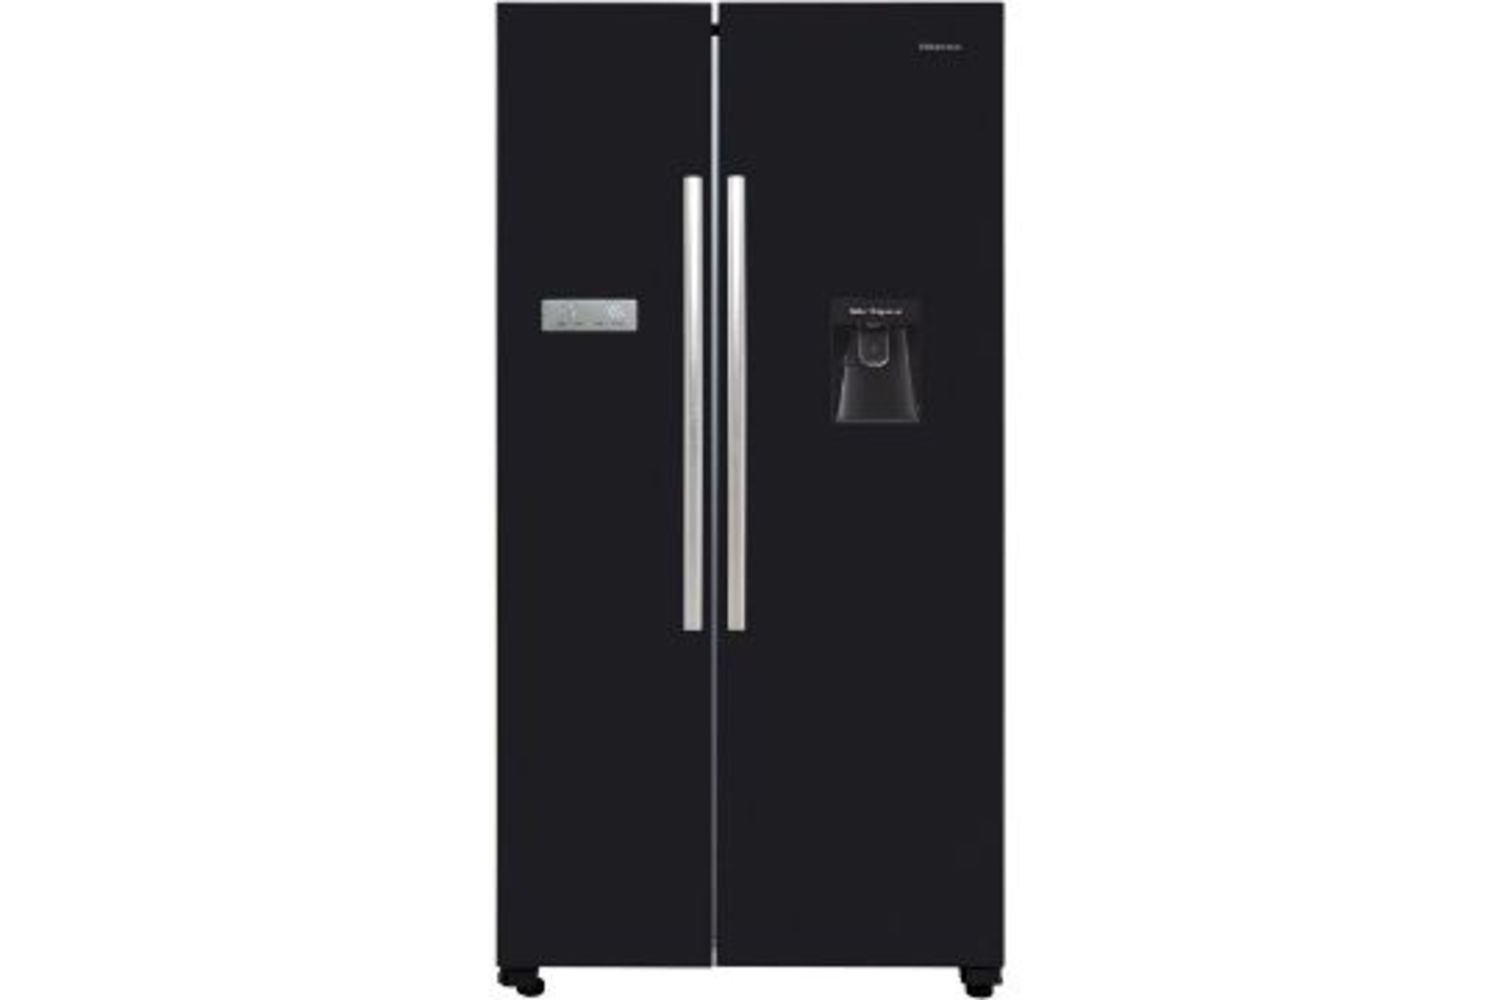 Grade A Argos Fridges, Freezers, Cookers & Washing Machines With Mainly Delivery Damage & 5ft, 6ft Nectar Mattresses